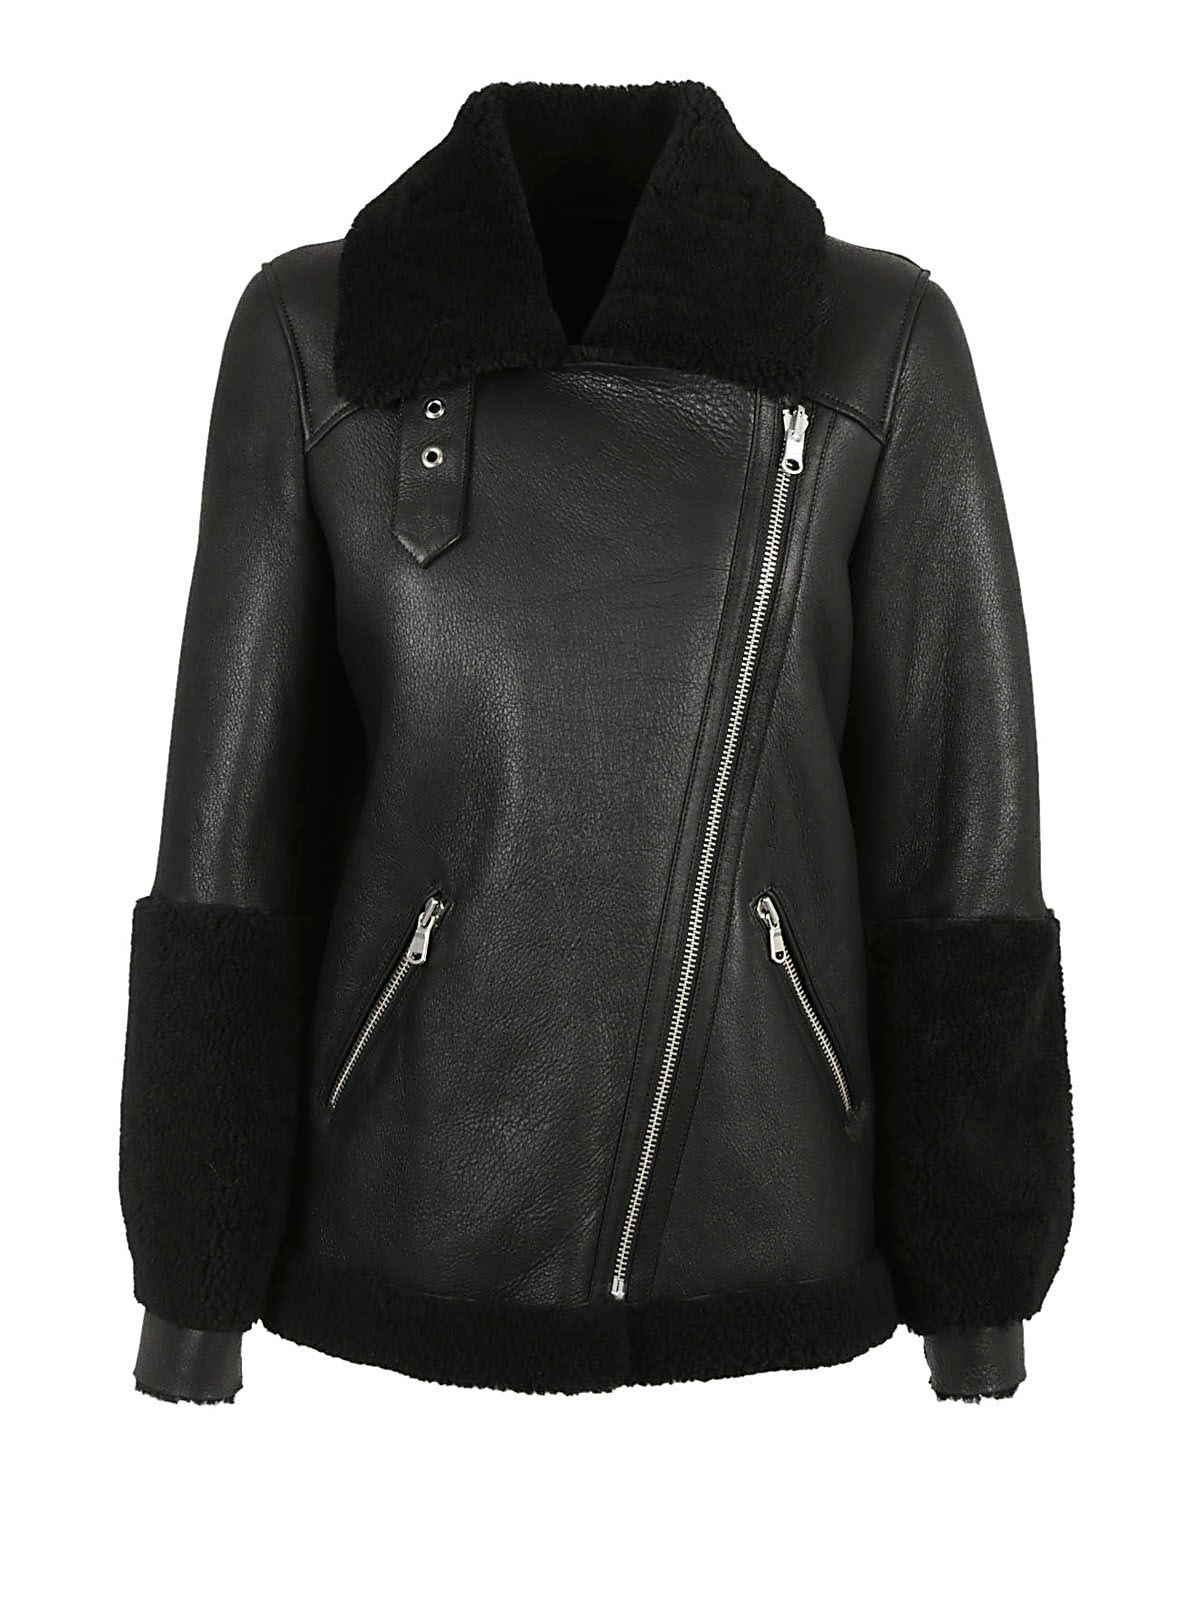 Federica Tosi Shearling Lined Leather Jacket